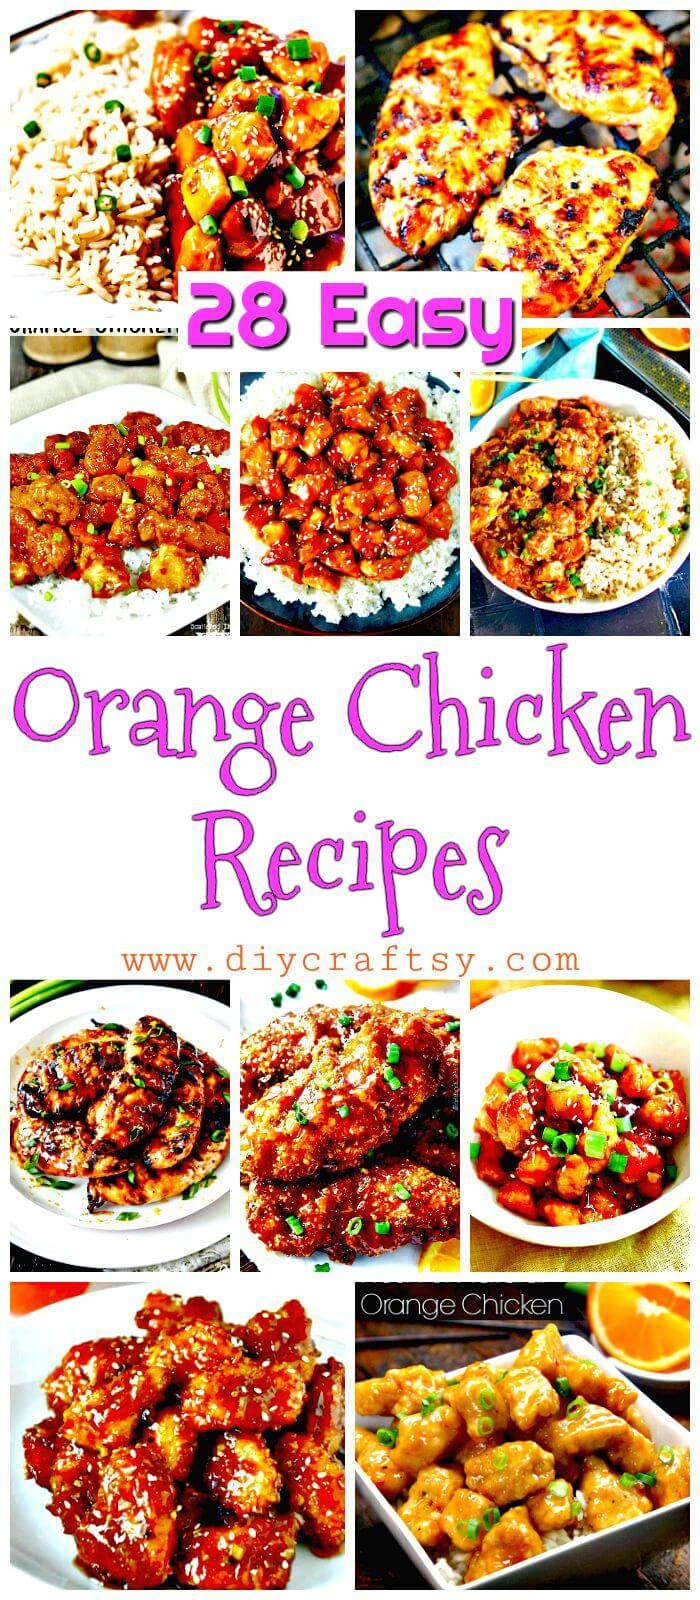 Orange Chicken Recipes - Easy Orange Chicken Recipe Ideas